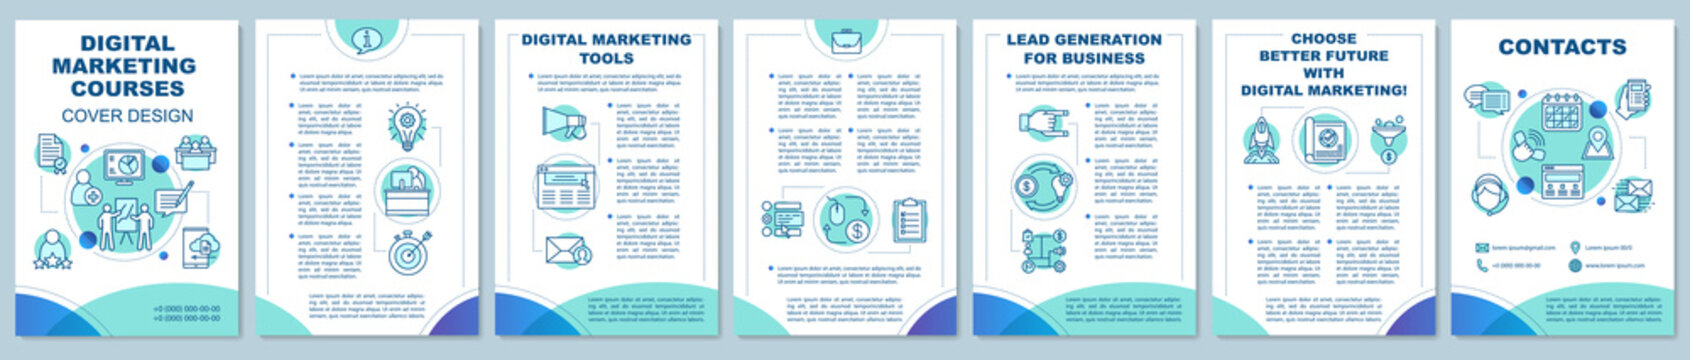 Digital marketing courses brochure template layout